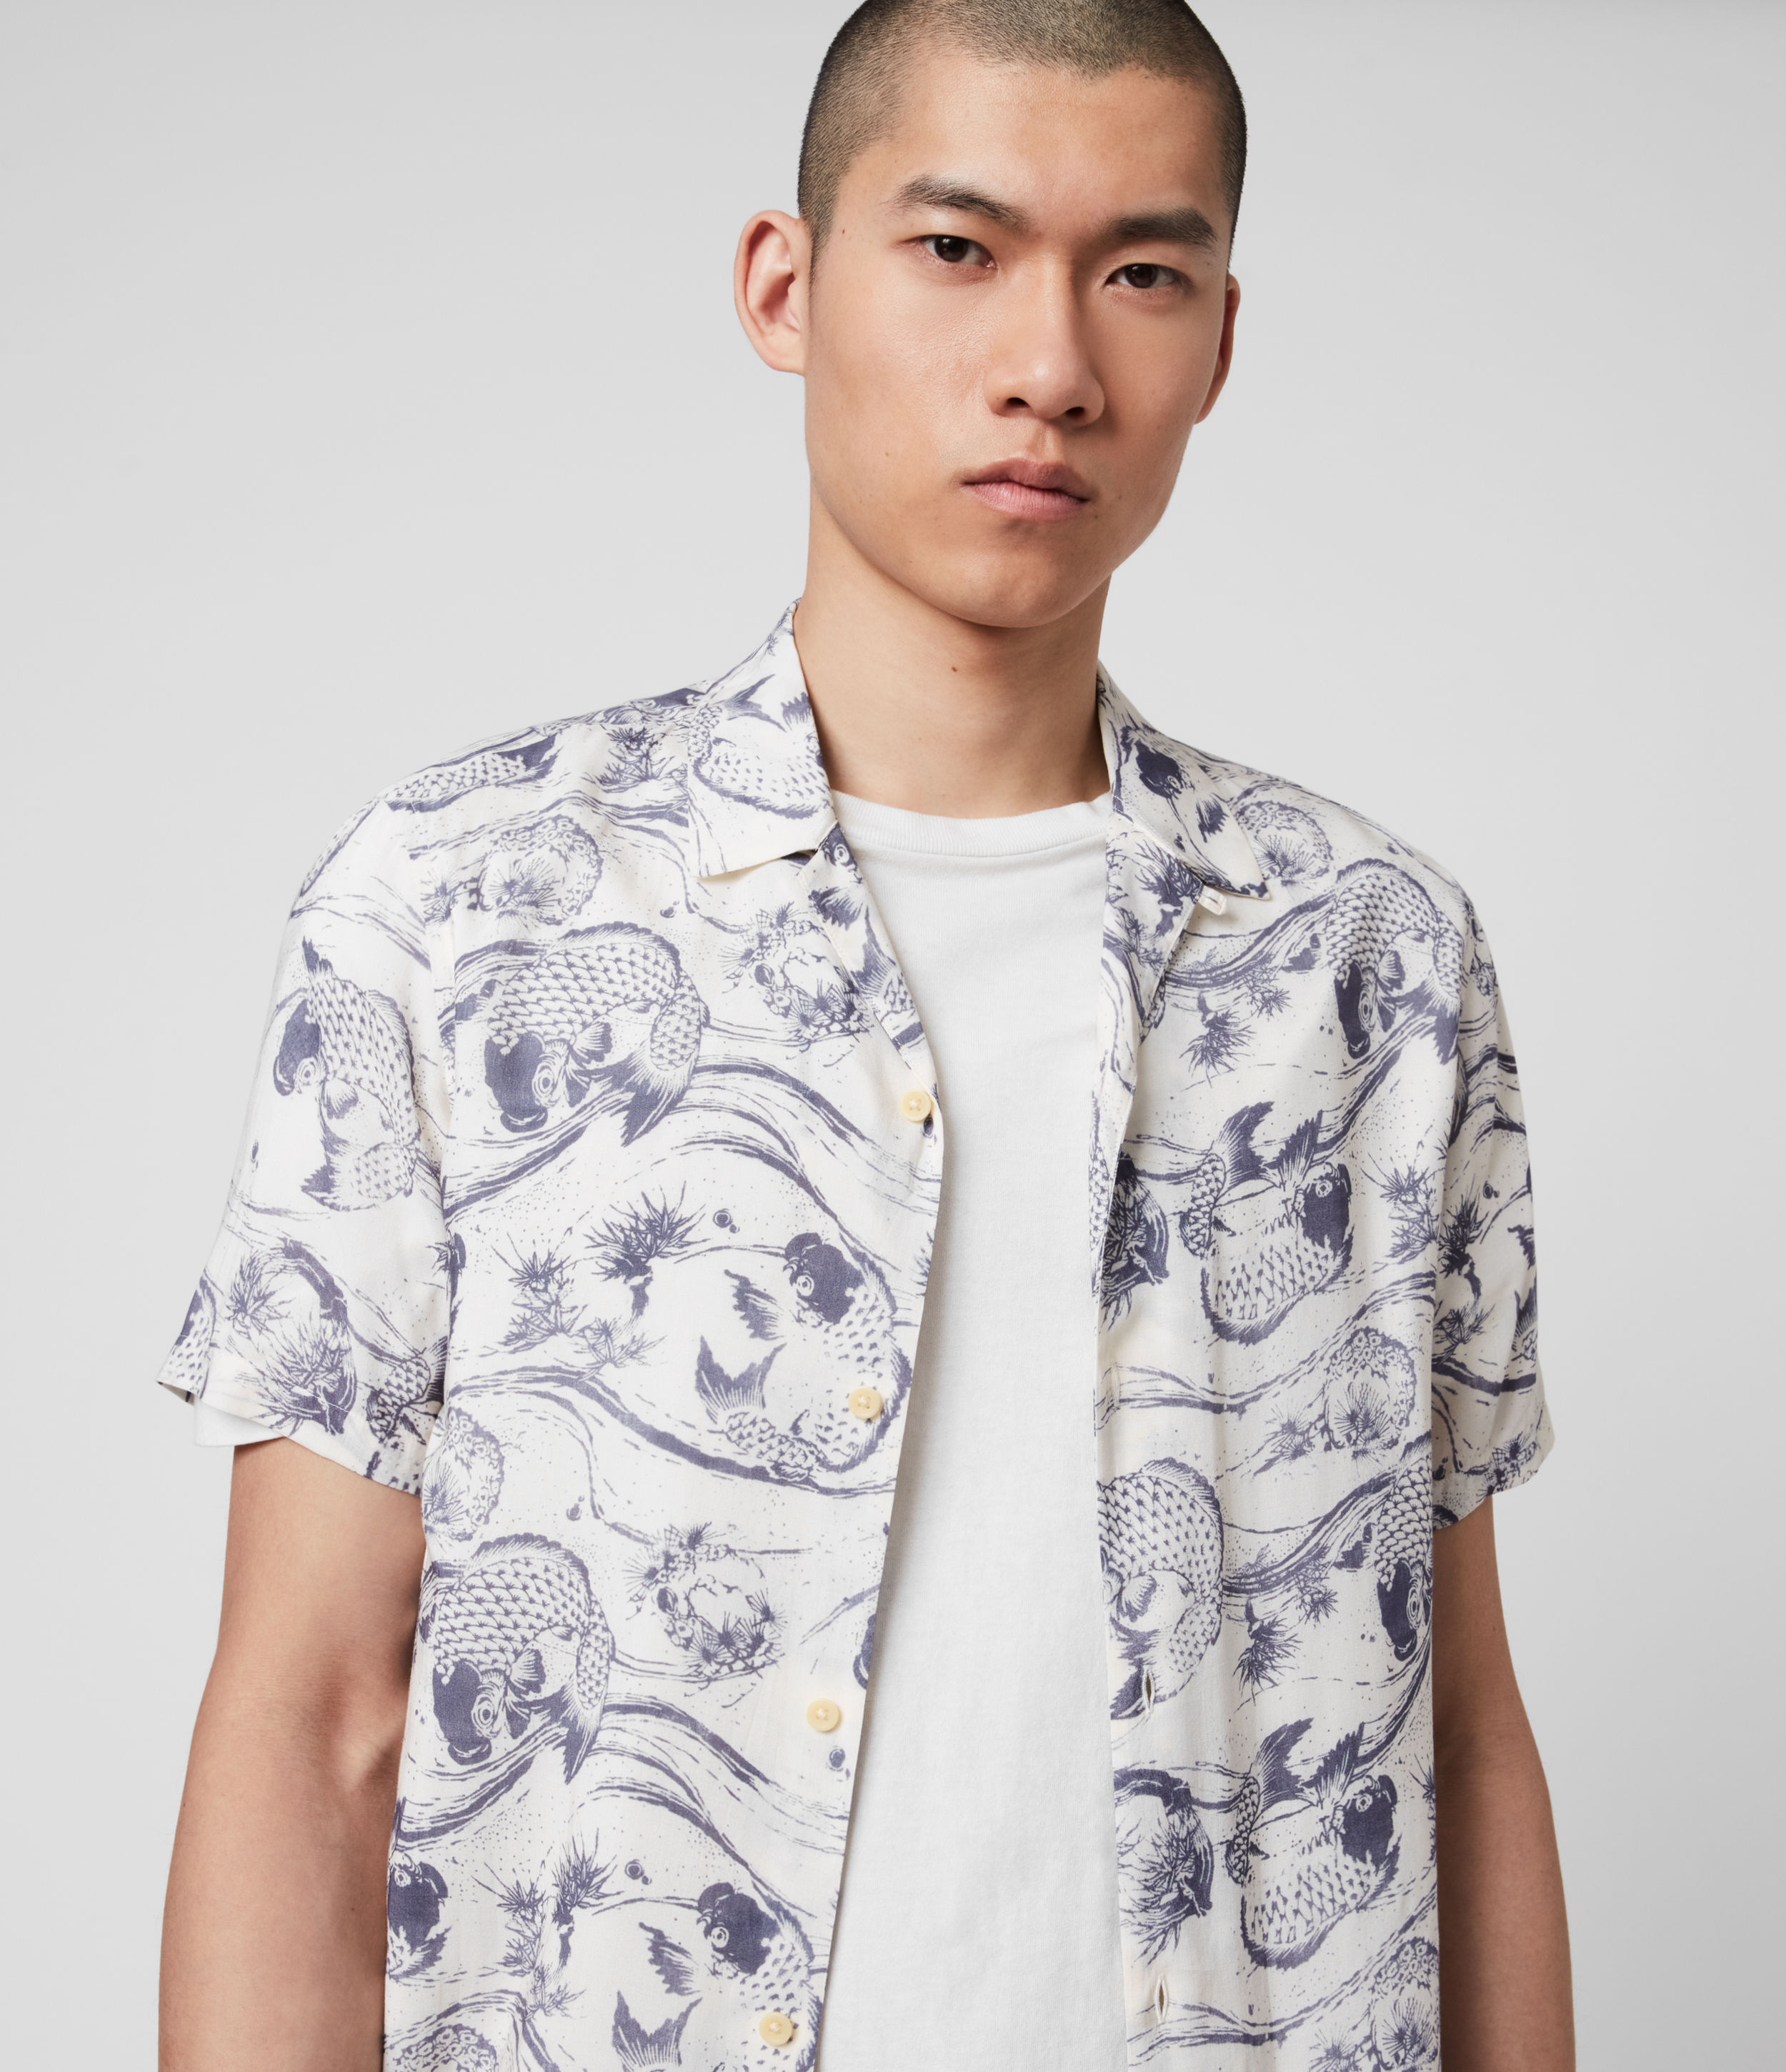 AllSaints Men's Japanese print Lightweight Koi Shirt, White and Grey, Size: M